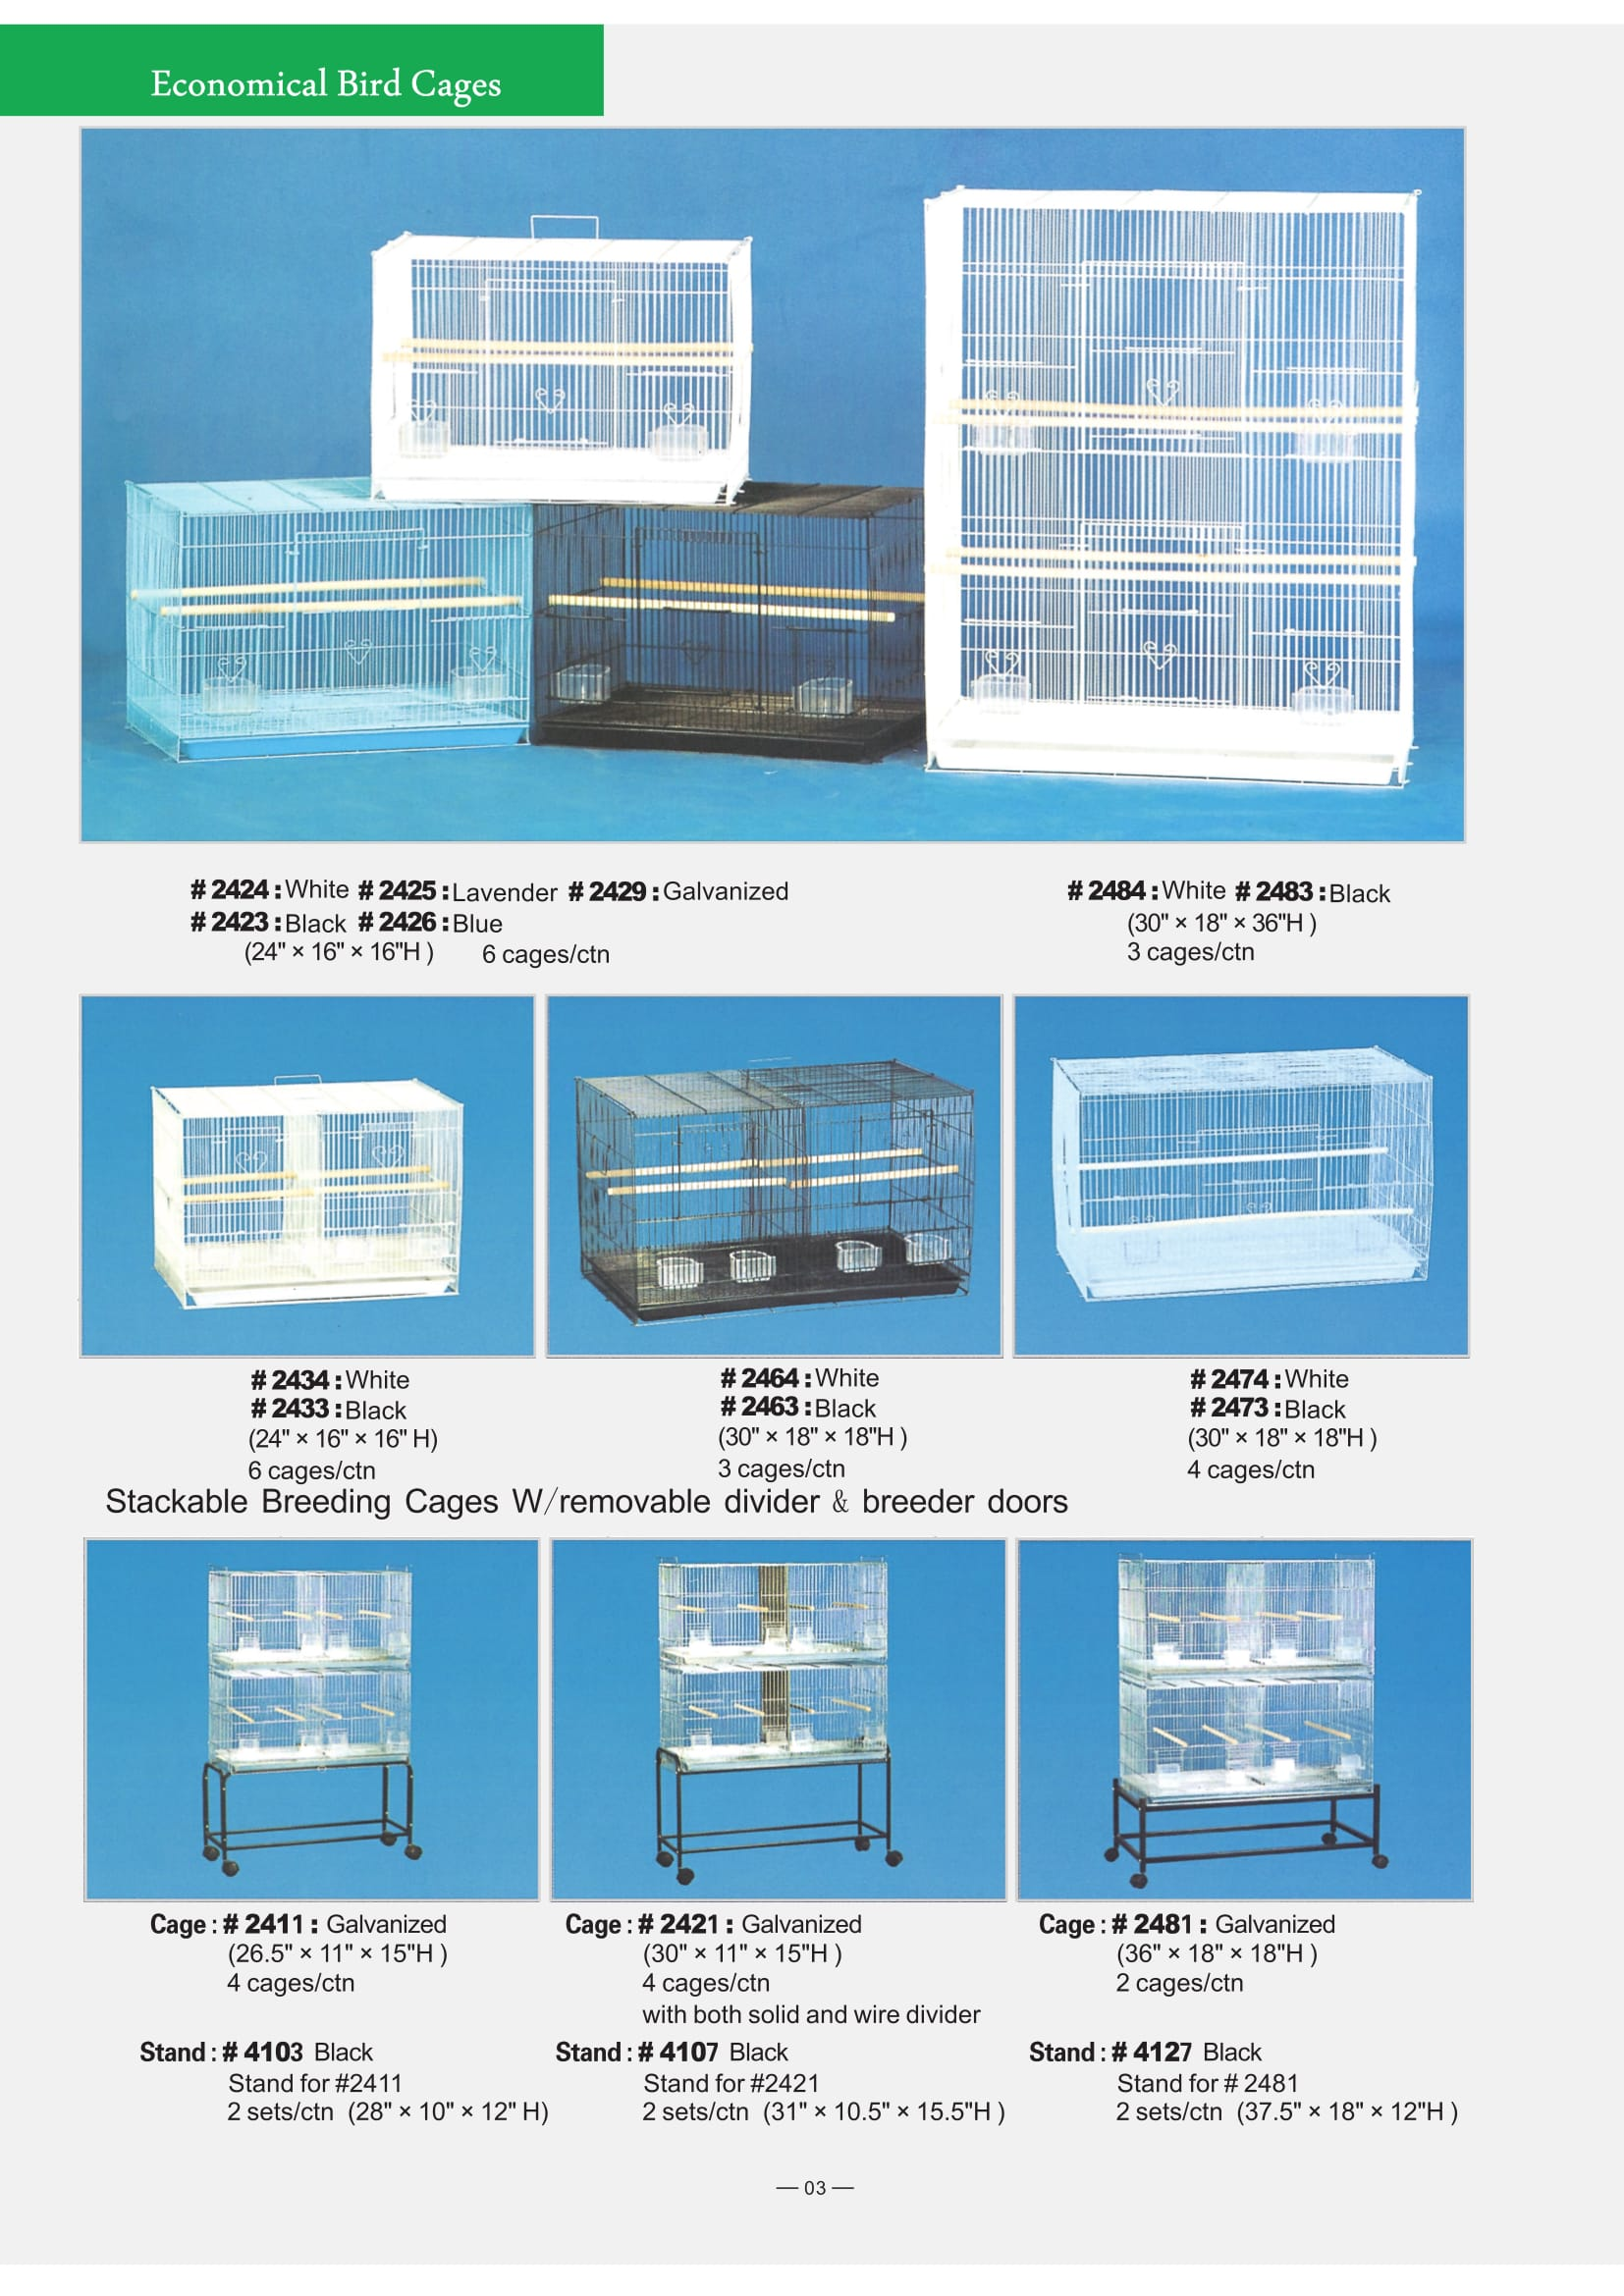 2. Economical Bird Cages Part 1-3